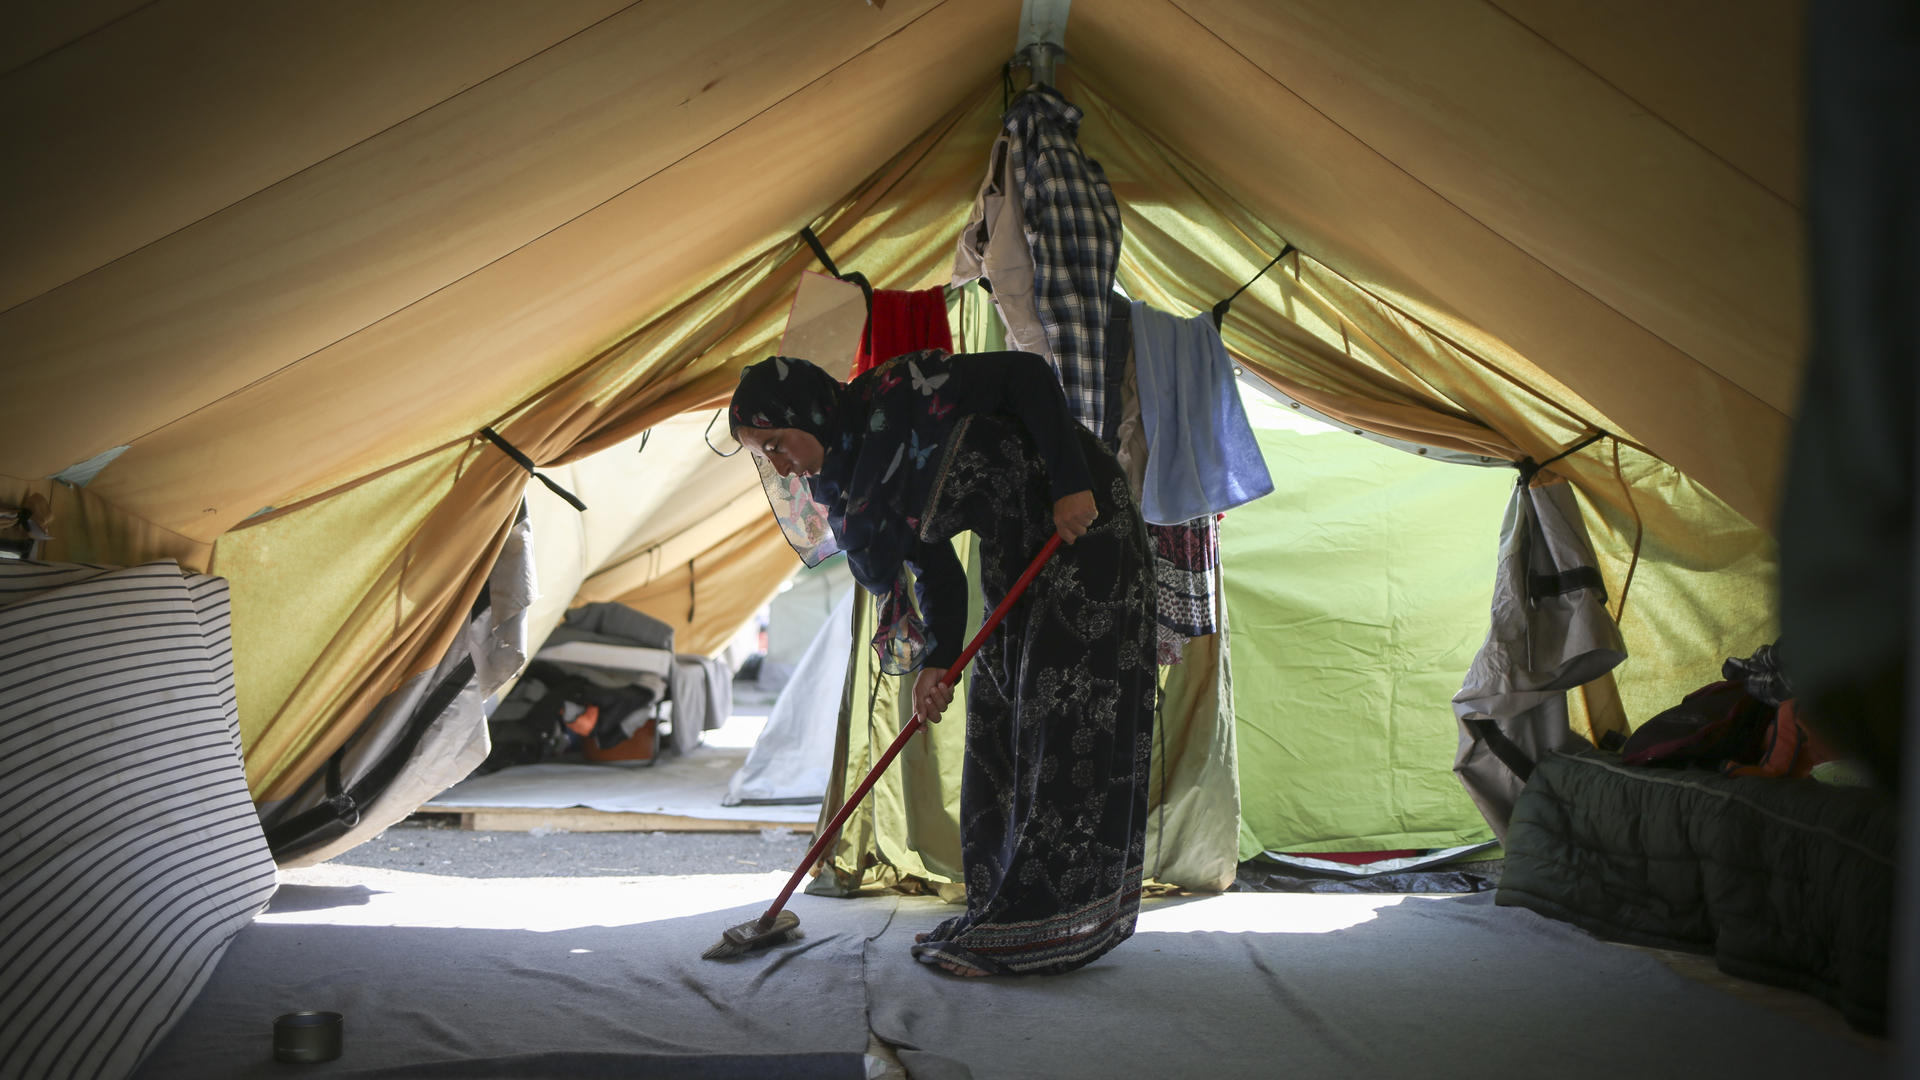 Syrian woman sweeps the floor of her tent in the Alexandria refugee camp